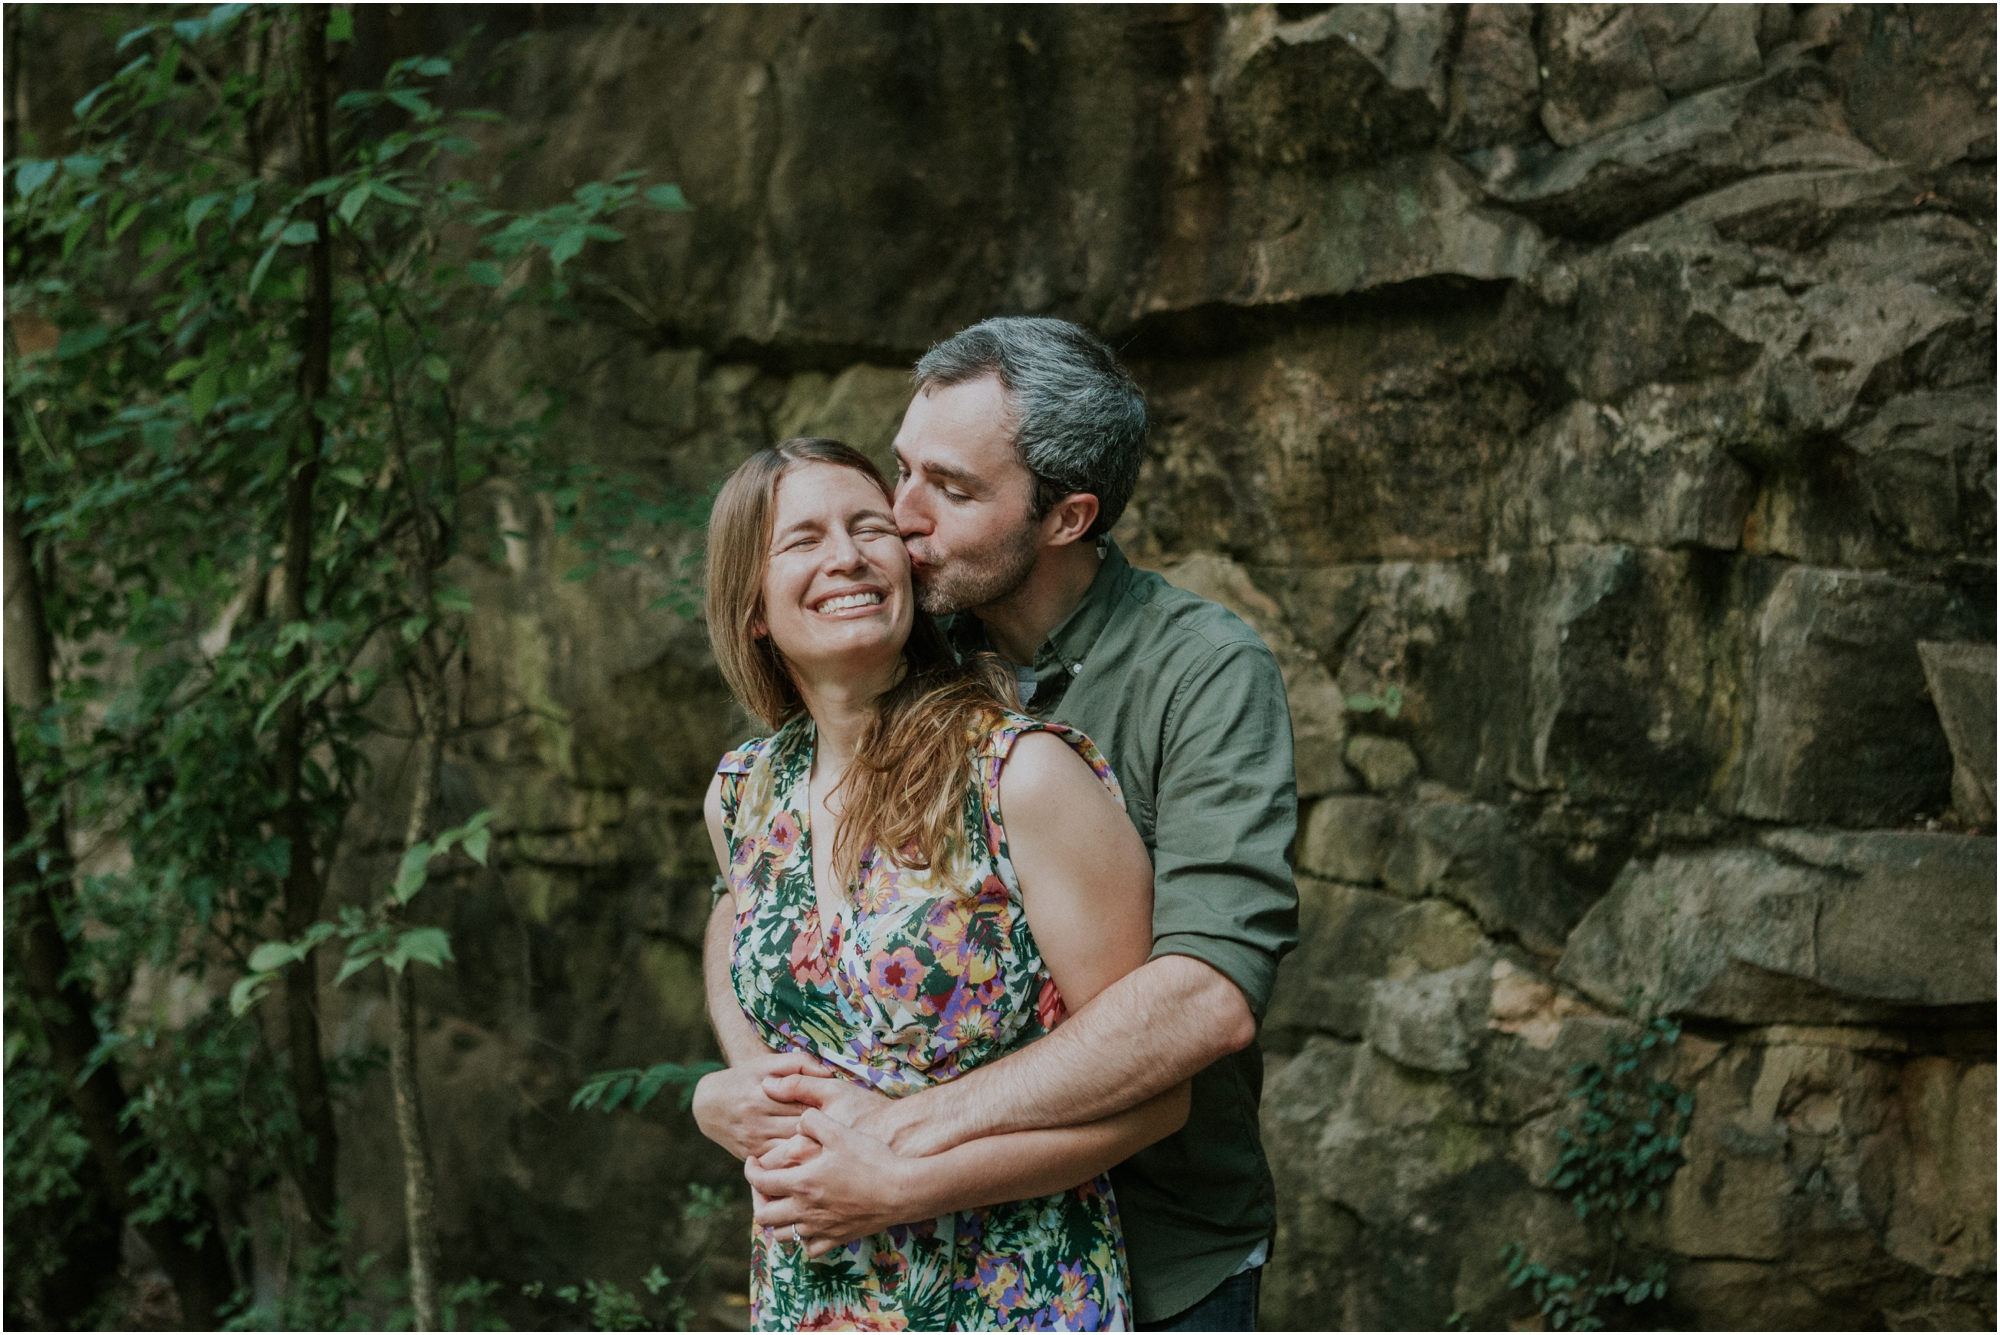 meads-quarry-ijams-nature-center-knoxville-tennessee-engagement-session-summer-northeast-tn-adventurous-outdoors-lake-katy-sergent_0018.jpg